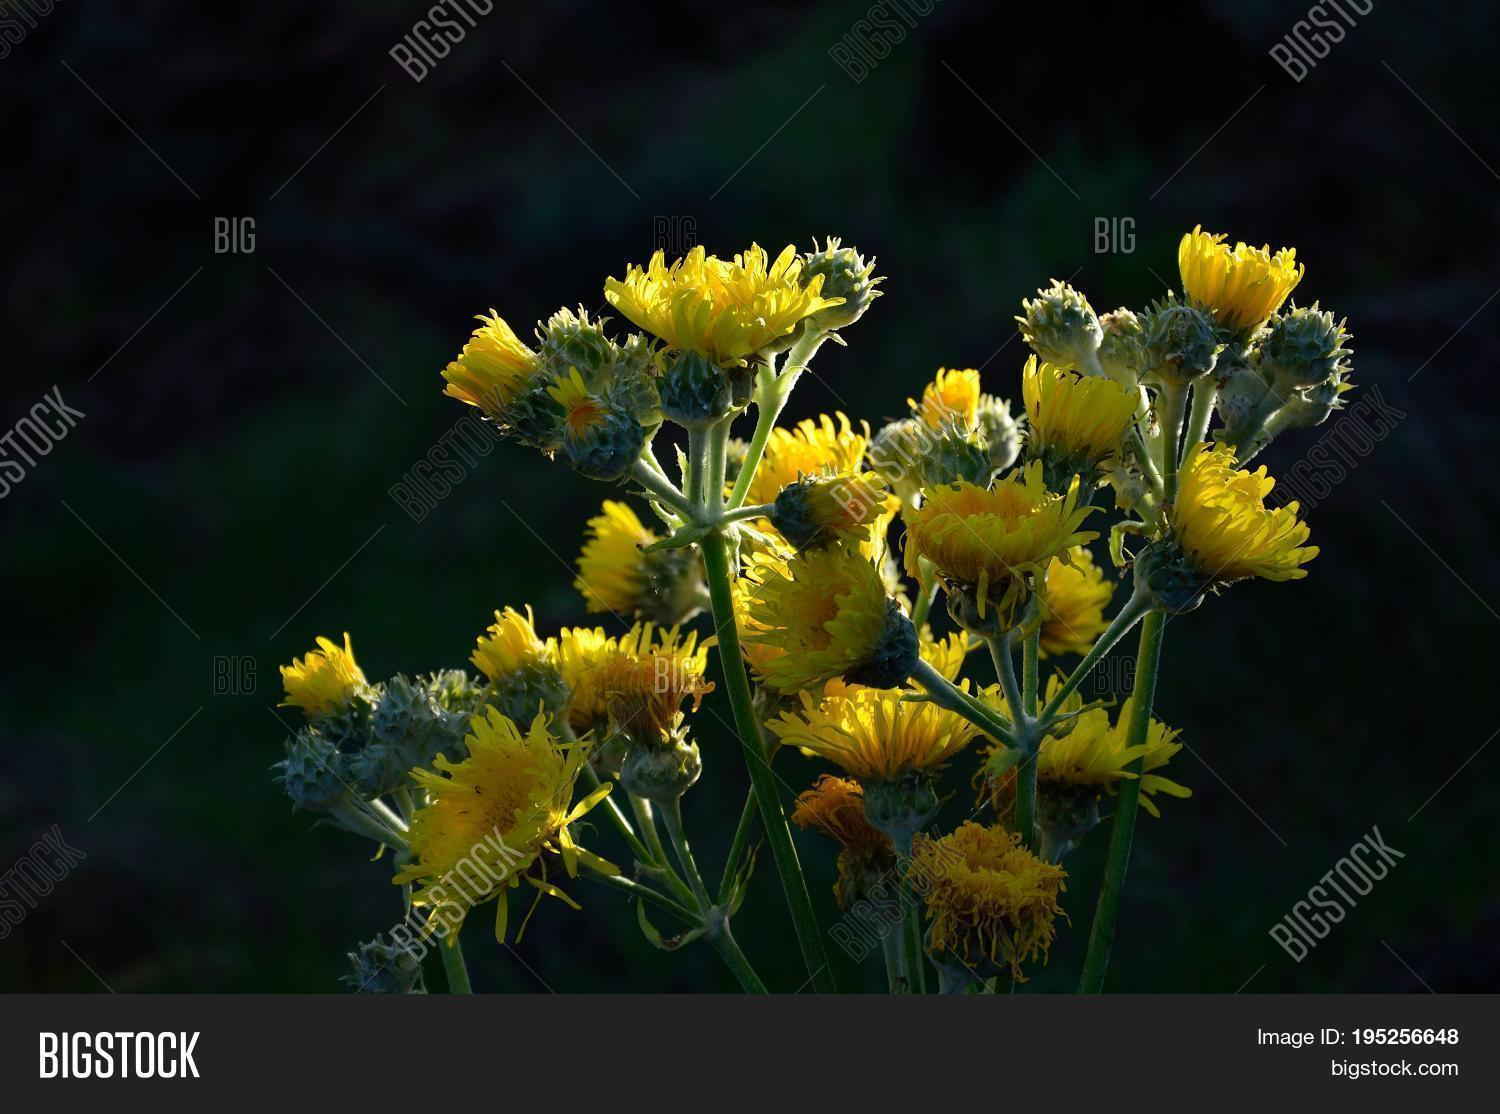 Cluster Bright Yellow Image Photo Free Trial Bigstock